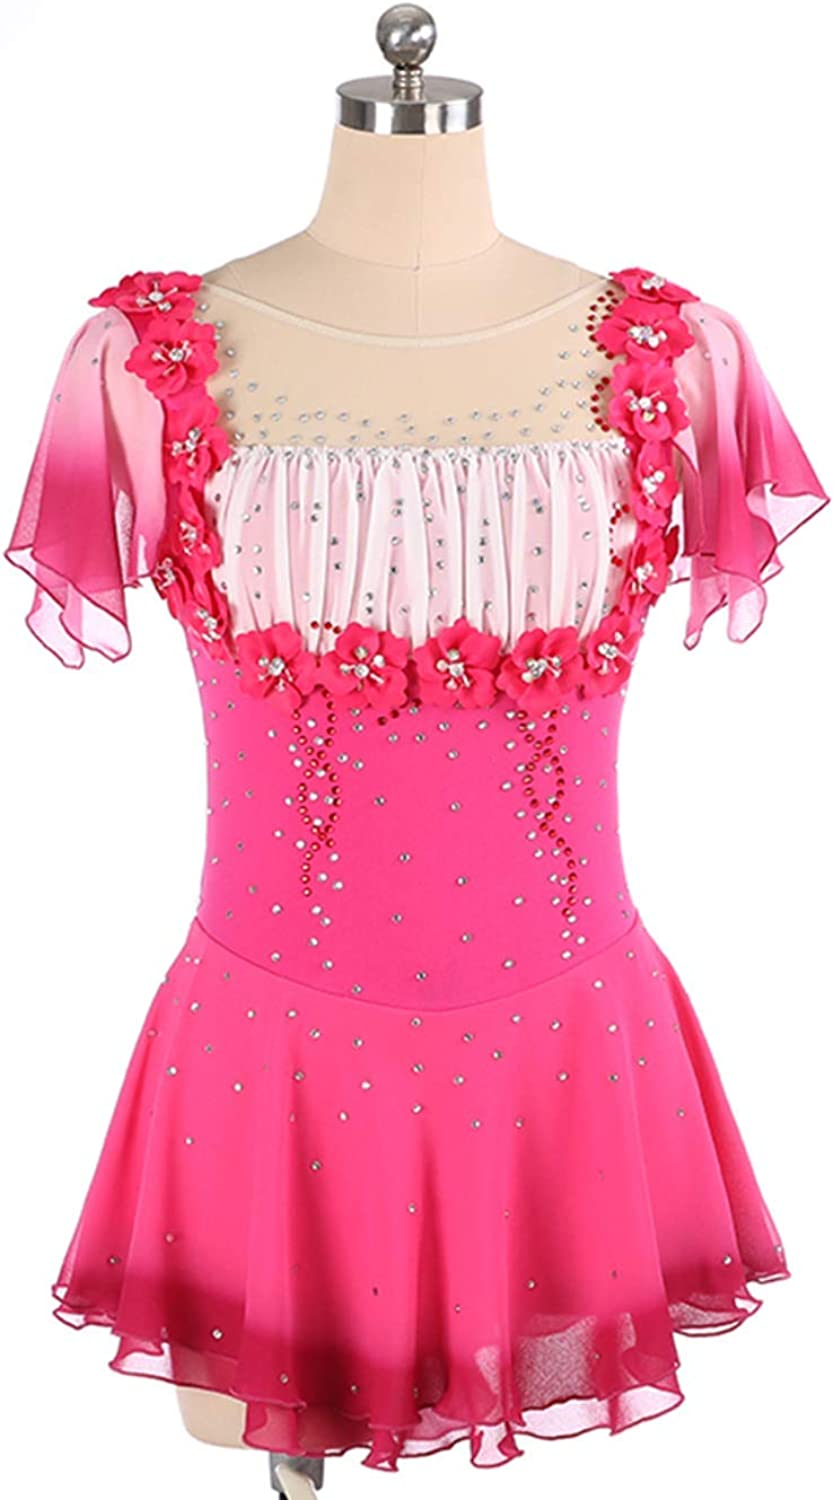 Heart&M Ice Skating Dress Girls, Handmade Figure Skating Competition Professional Costume Crystals Short Sleeved Skating Dress Fuchsia